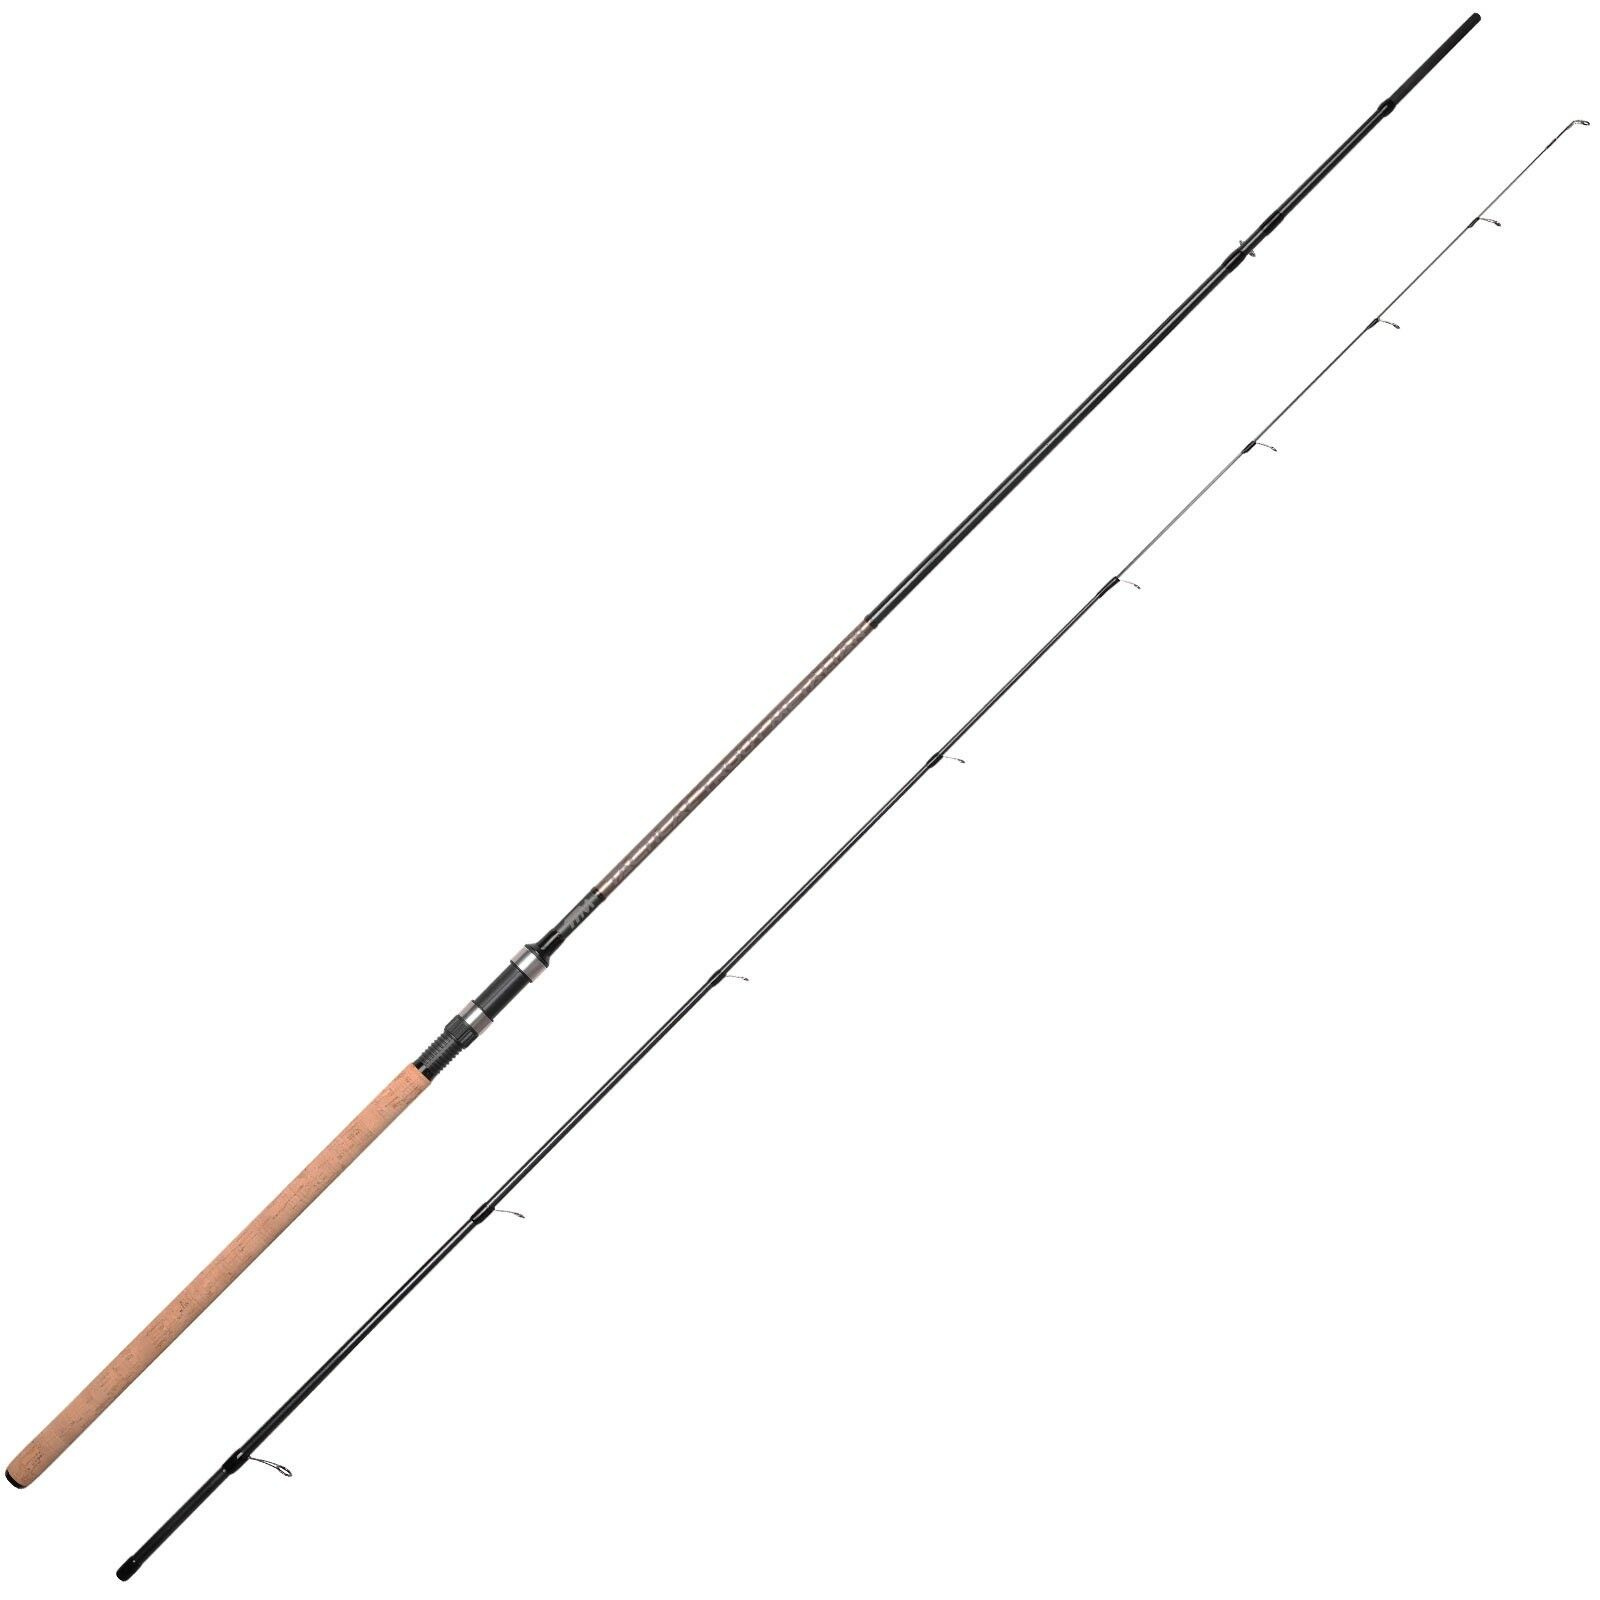 Spro Forellenrute - Trout Master Tactical Trout Metalian 3,00m 5-40g 2 Teile